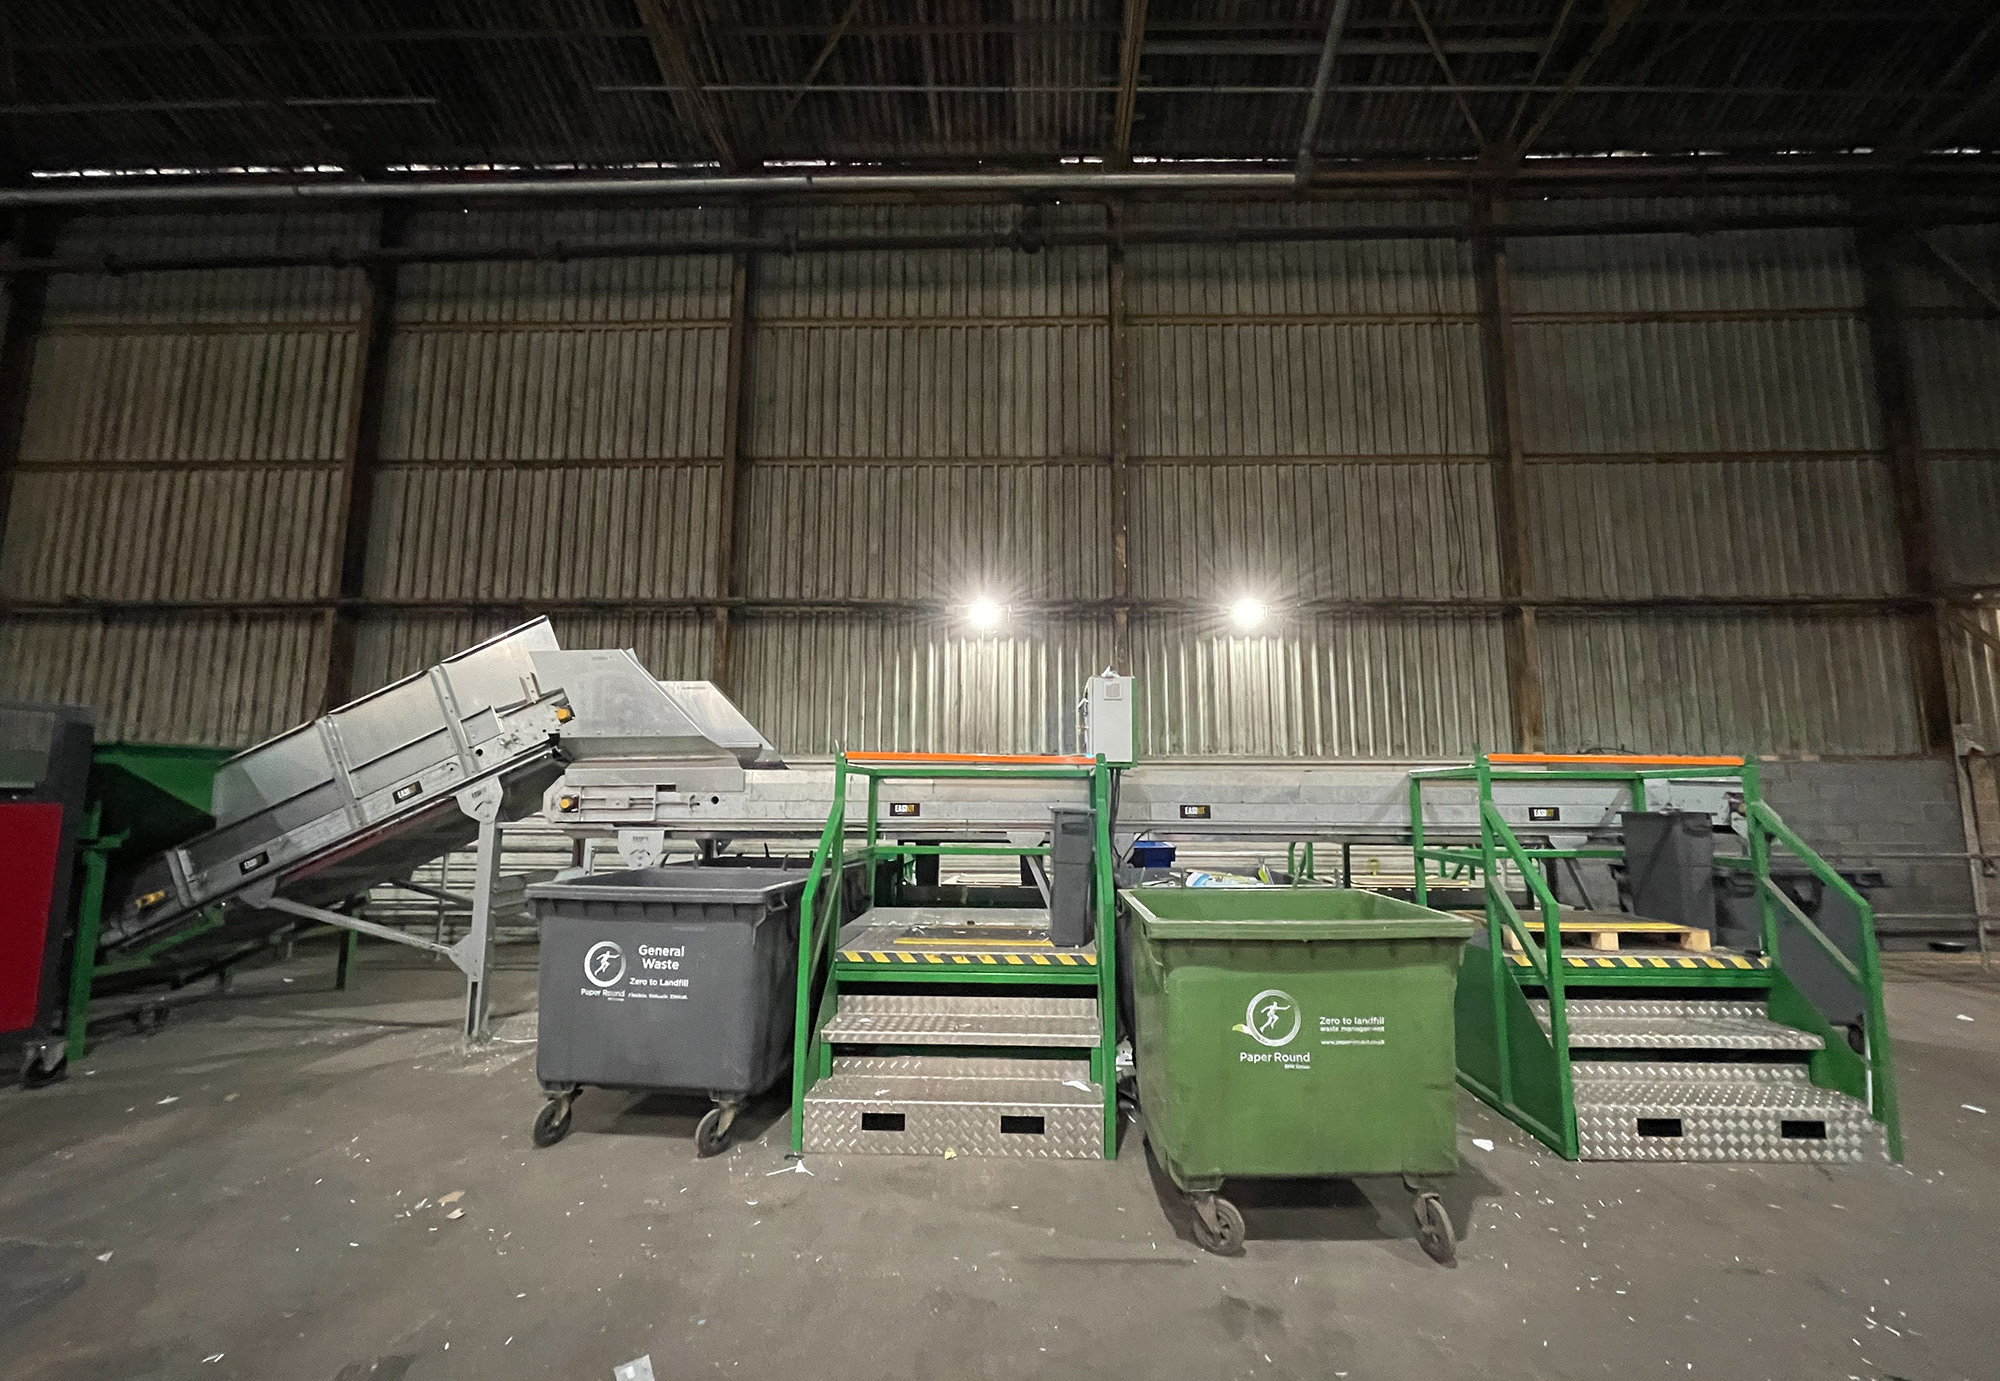 Paper Round waste and recycling facility [Bespoke picking station]